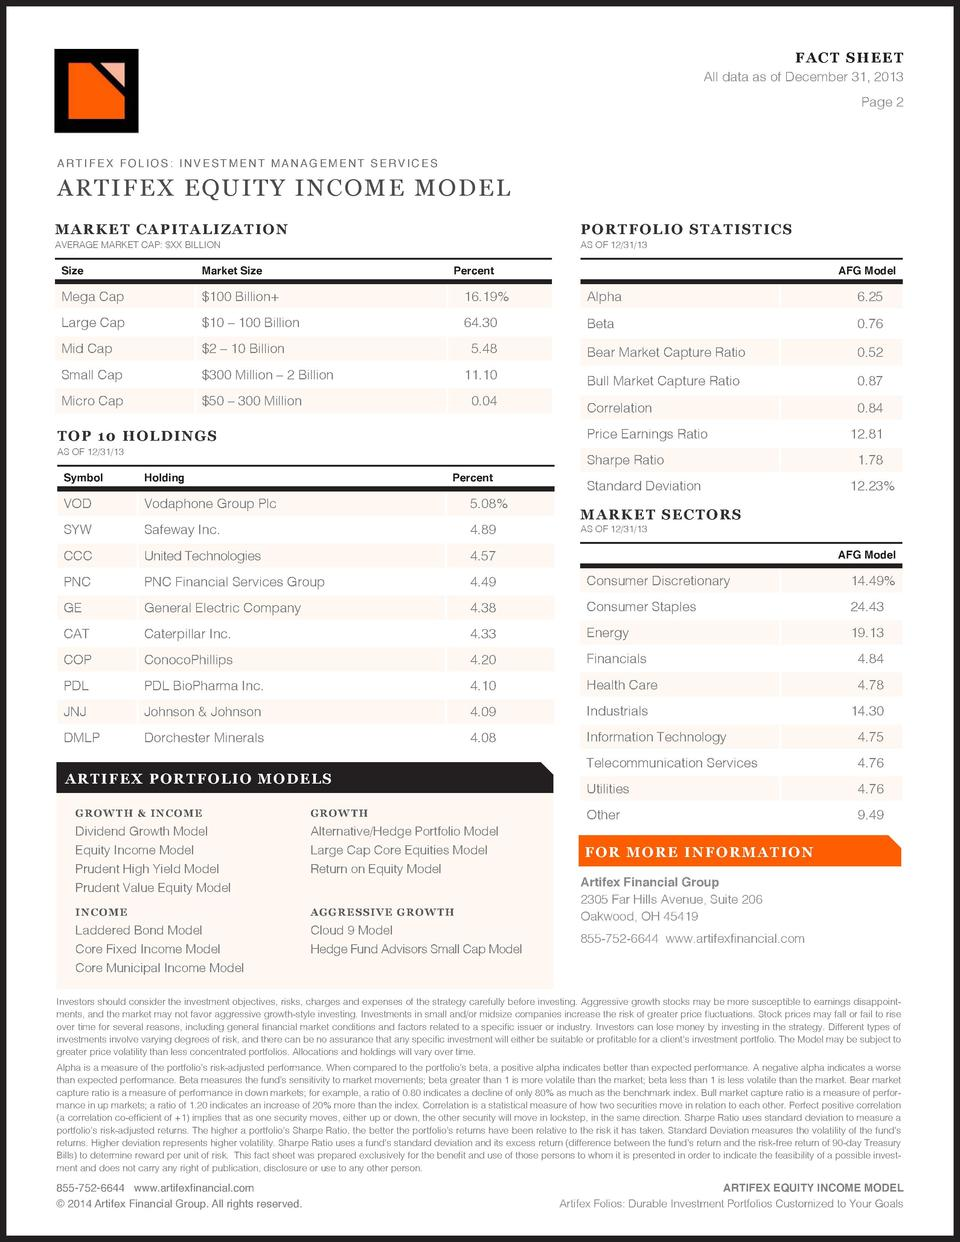 FAC T SHEET All data as of December 31, 2013 Page 2  ARTIFEX EQUITY INCOME MODEL MARK ET CAP I TA LIZ A T IO N Size  PO RT...